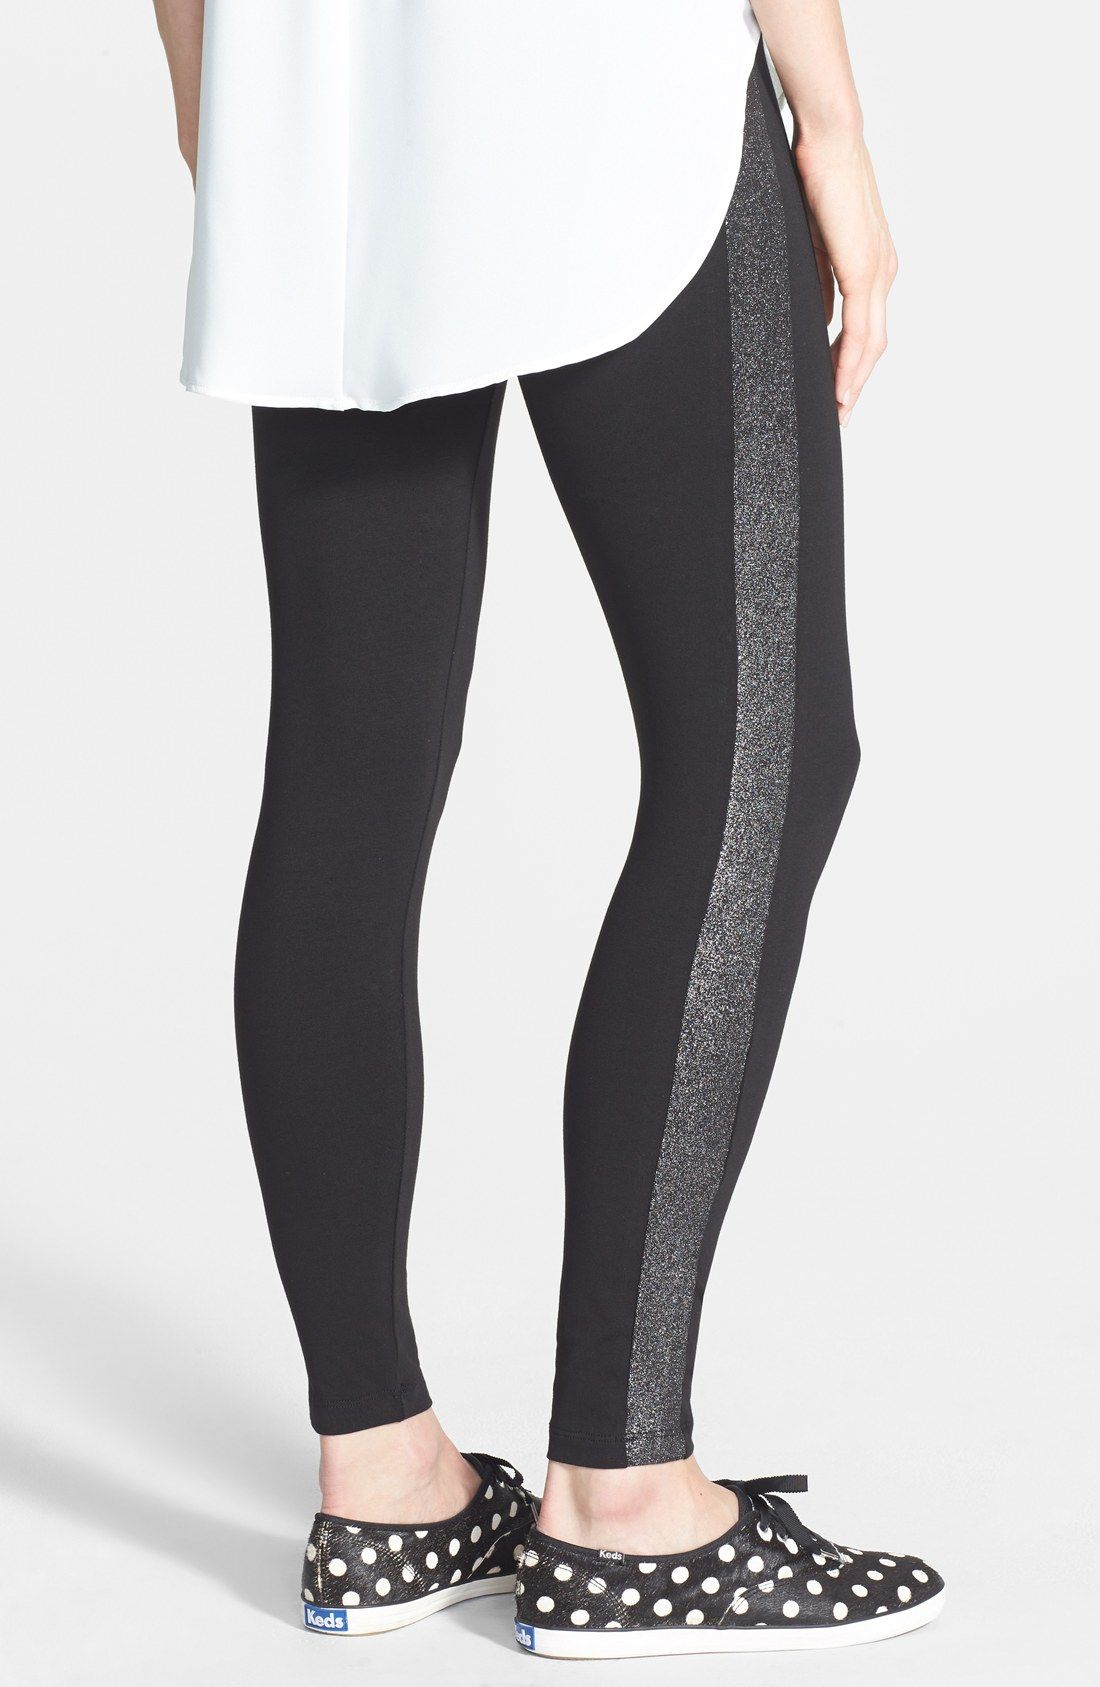 Get in my closet! Adore the glittery stripe on these Kate Spade tuxedo leggings and of course the polka dot Keds!